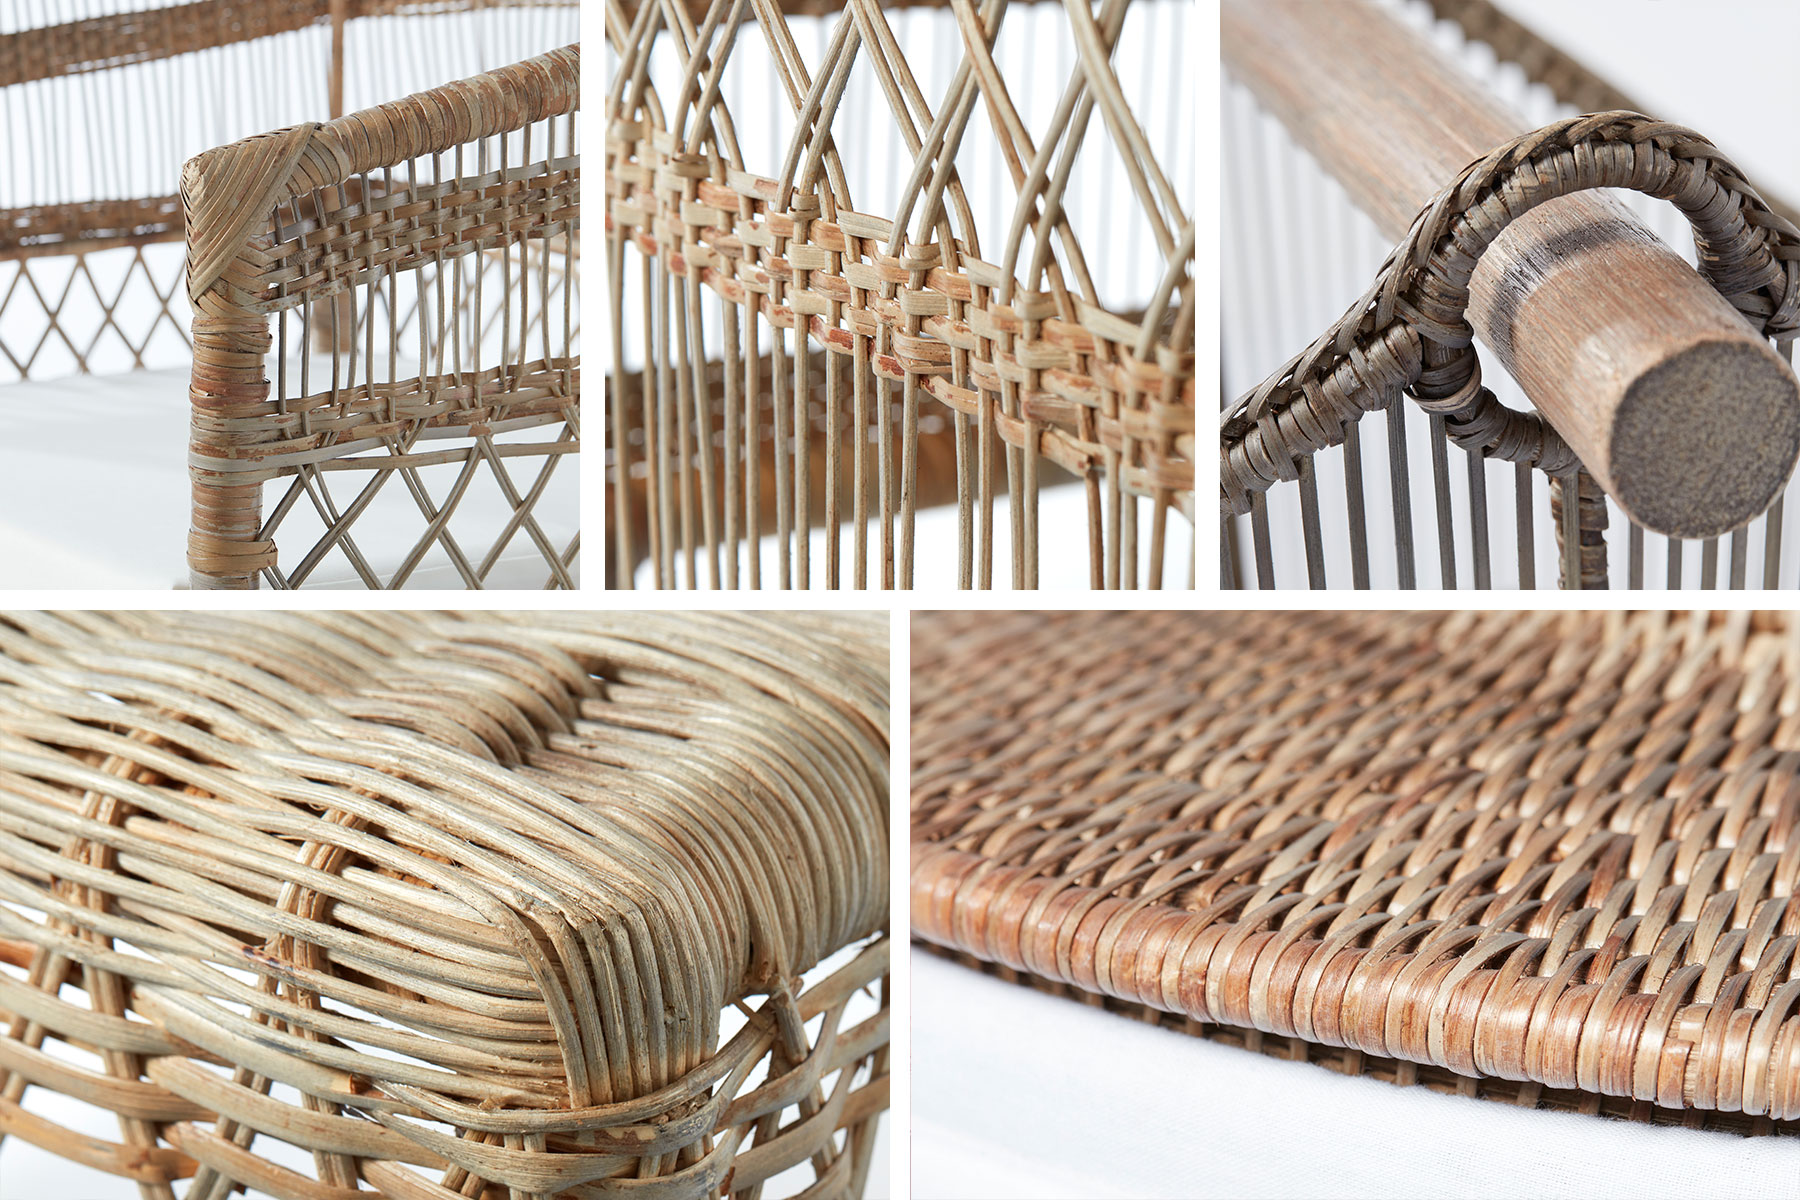 Norah rattan series - wholesaler of sustainable furniture and home accessories - Lene Bjerre